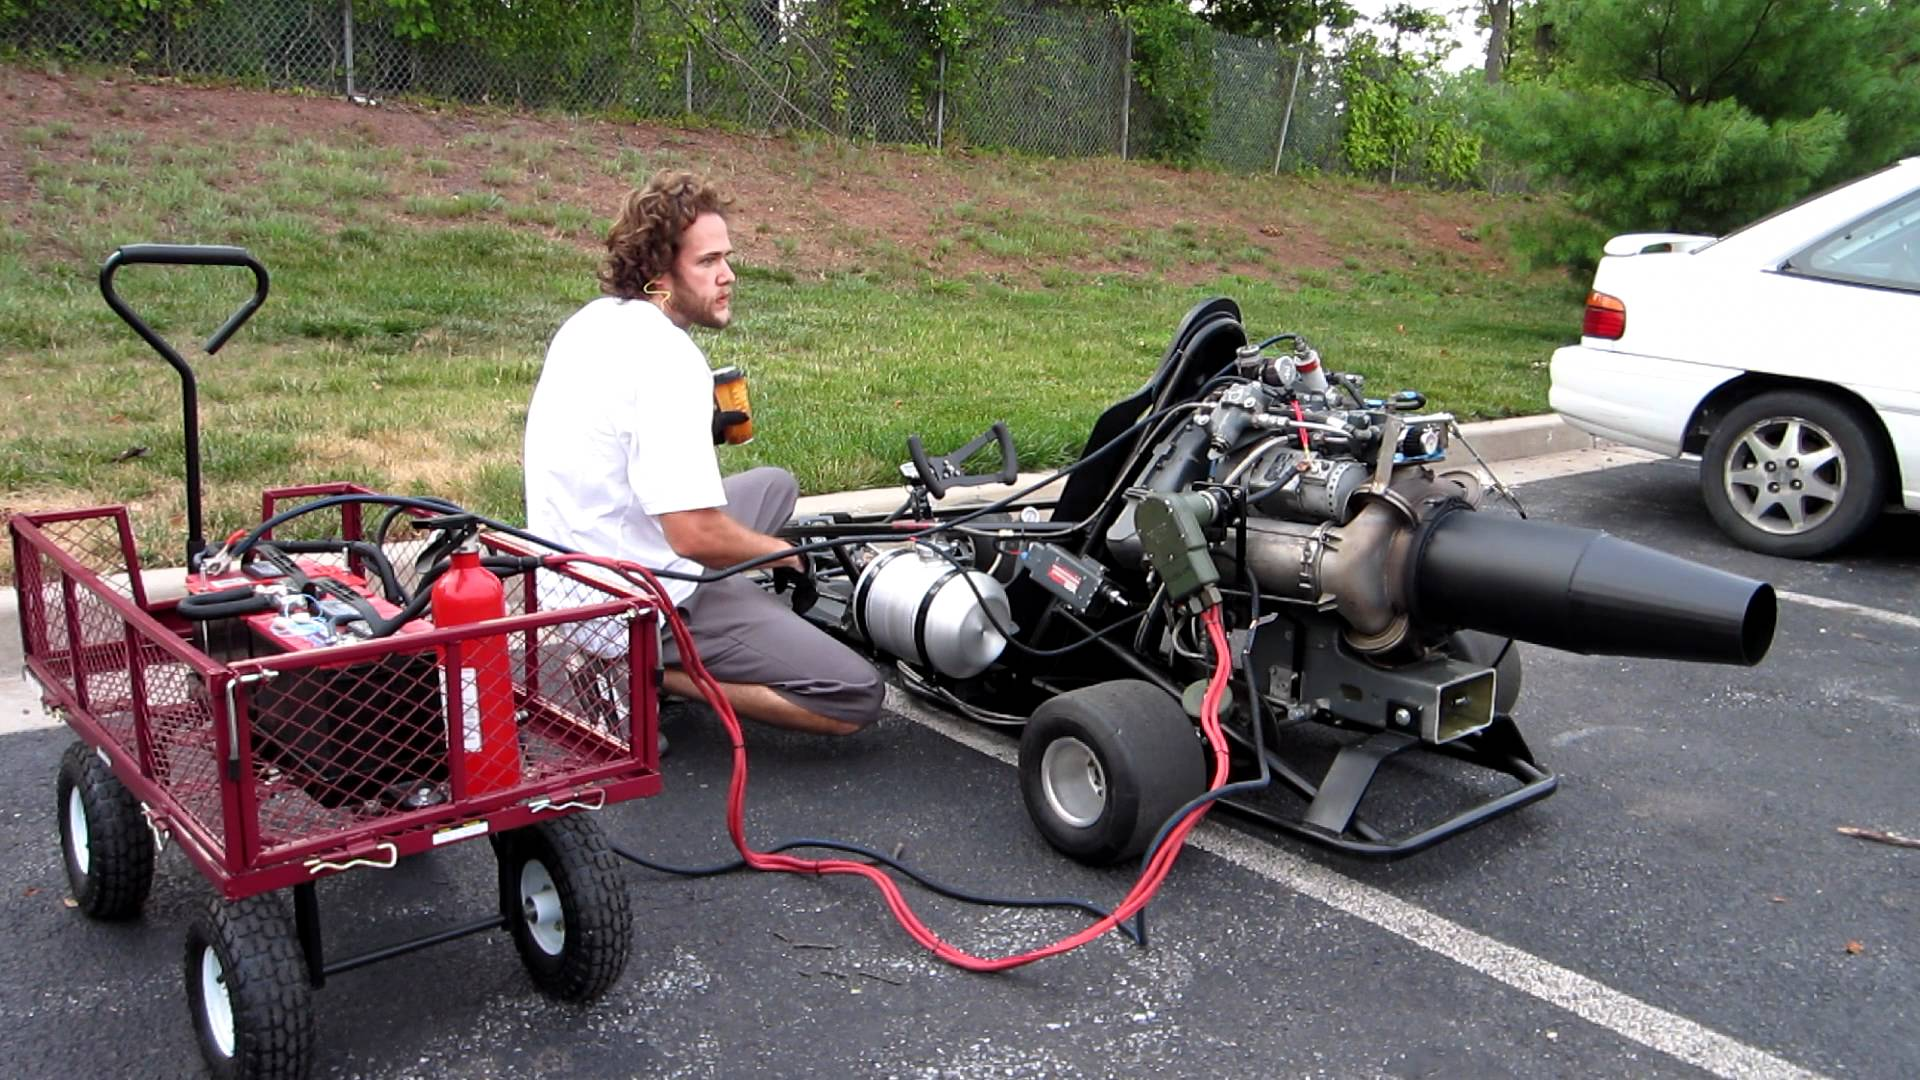 Check Out This One Of A Kind Jet Engine Powered Go Kart!